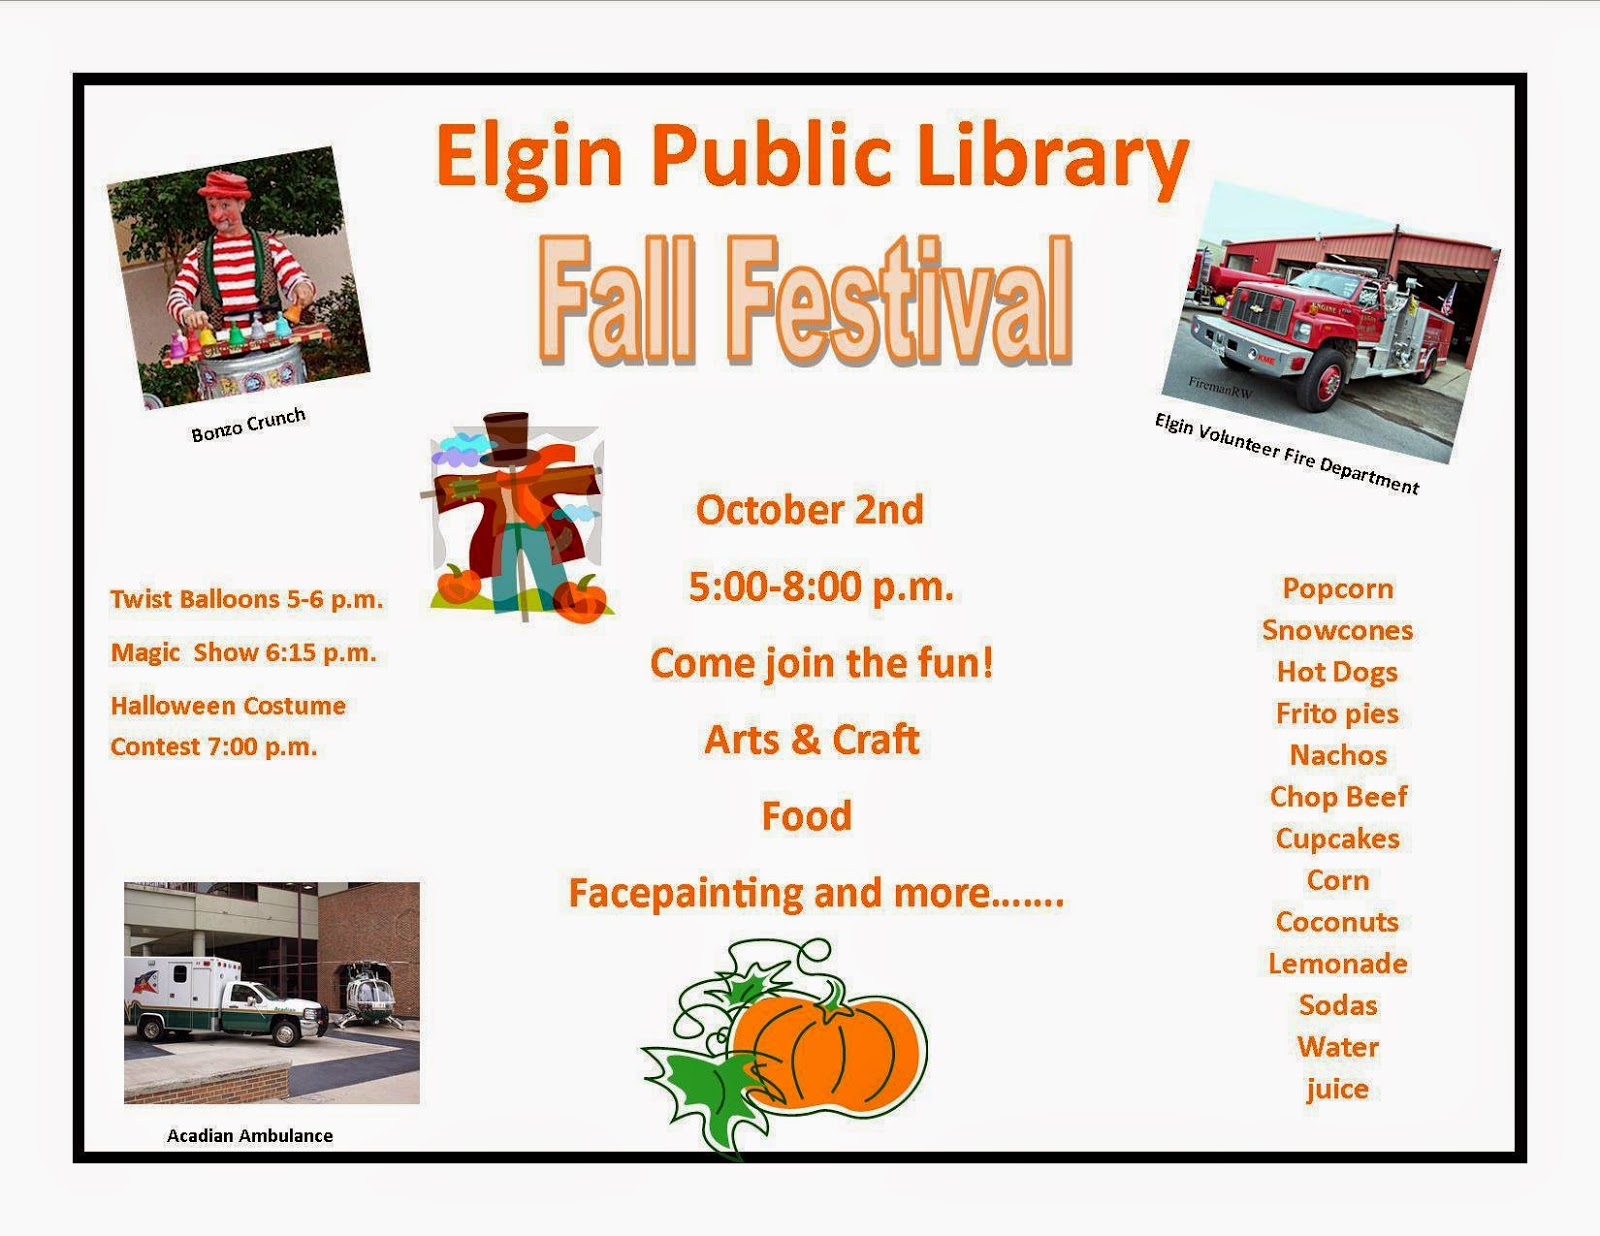 Elgin Public Library Fall Festival